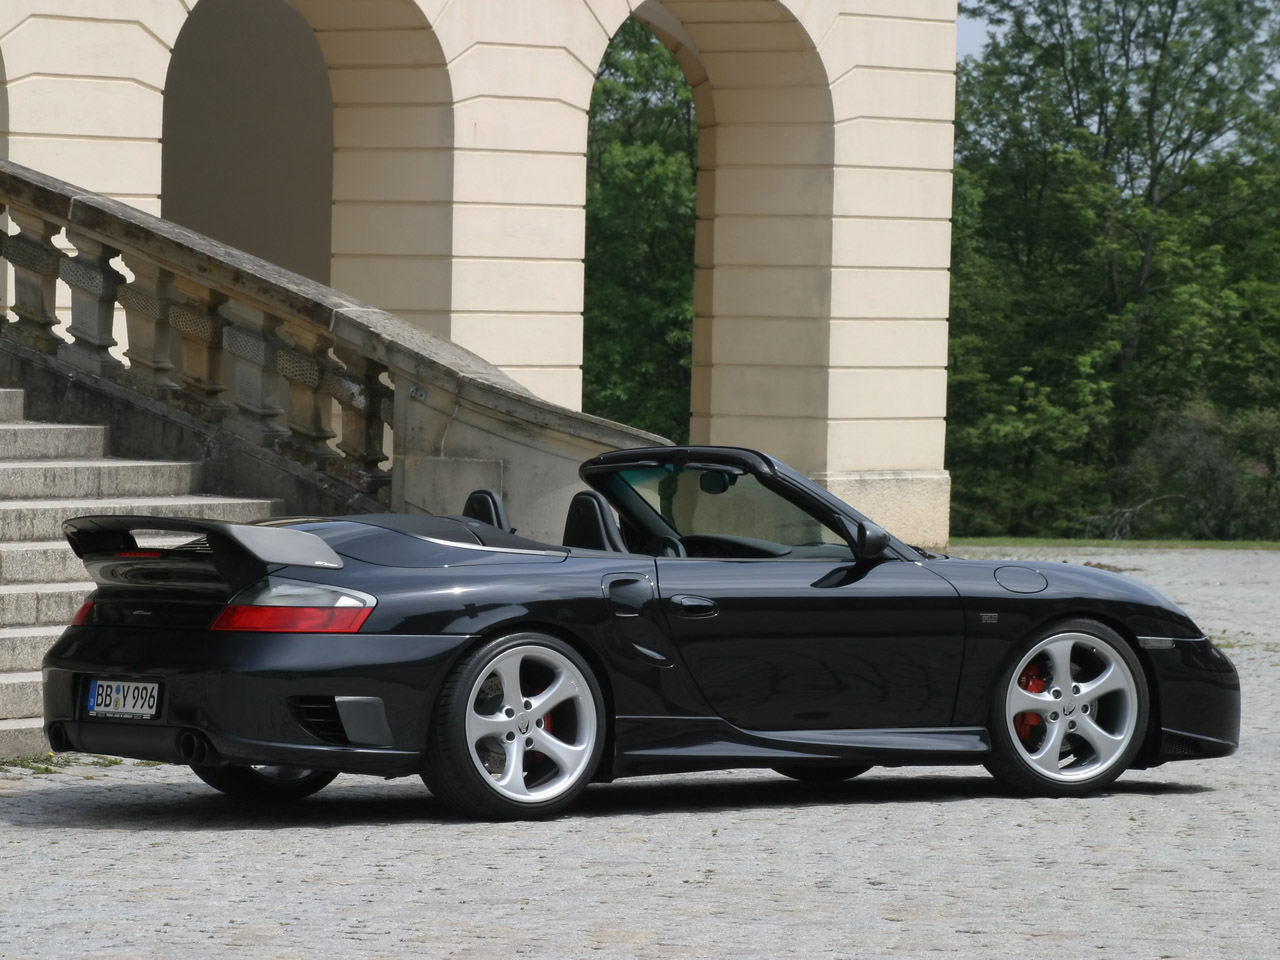 2005 TechArt 911 Turbo Cabriolet Image